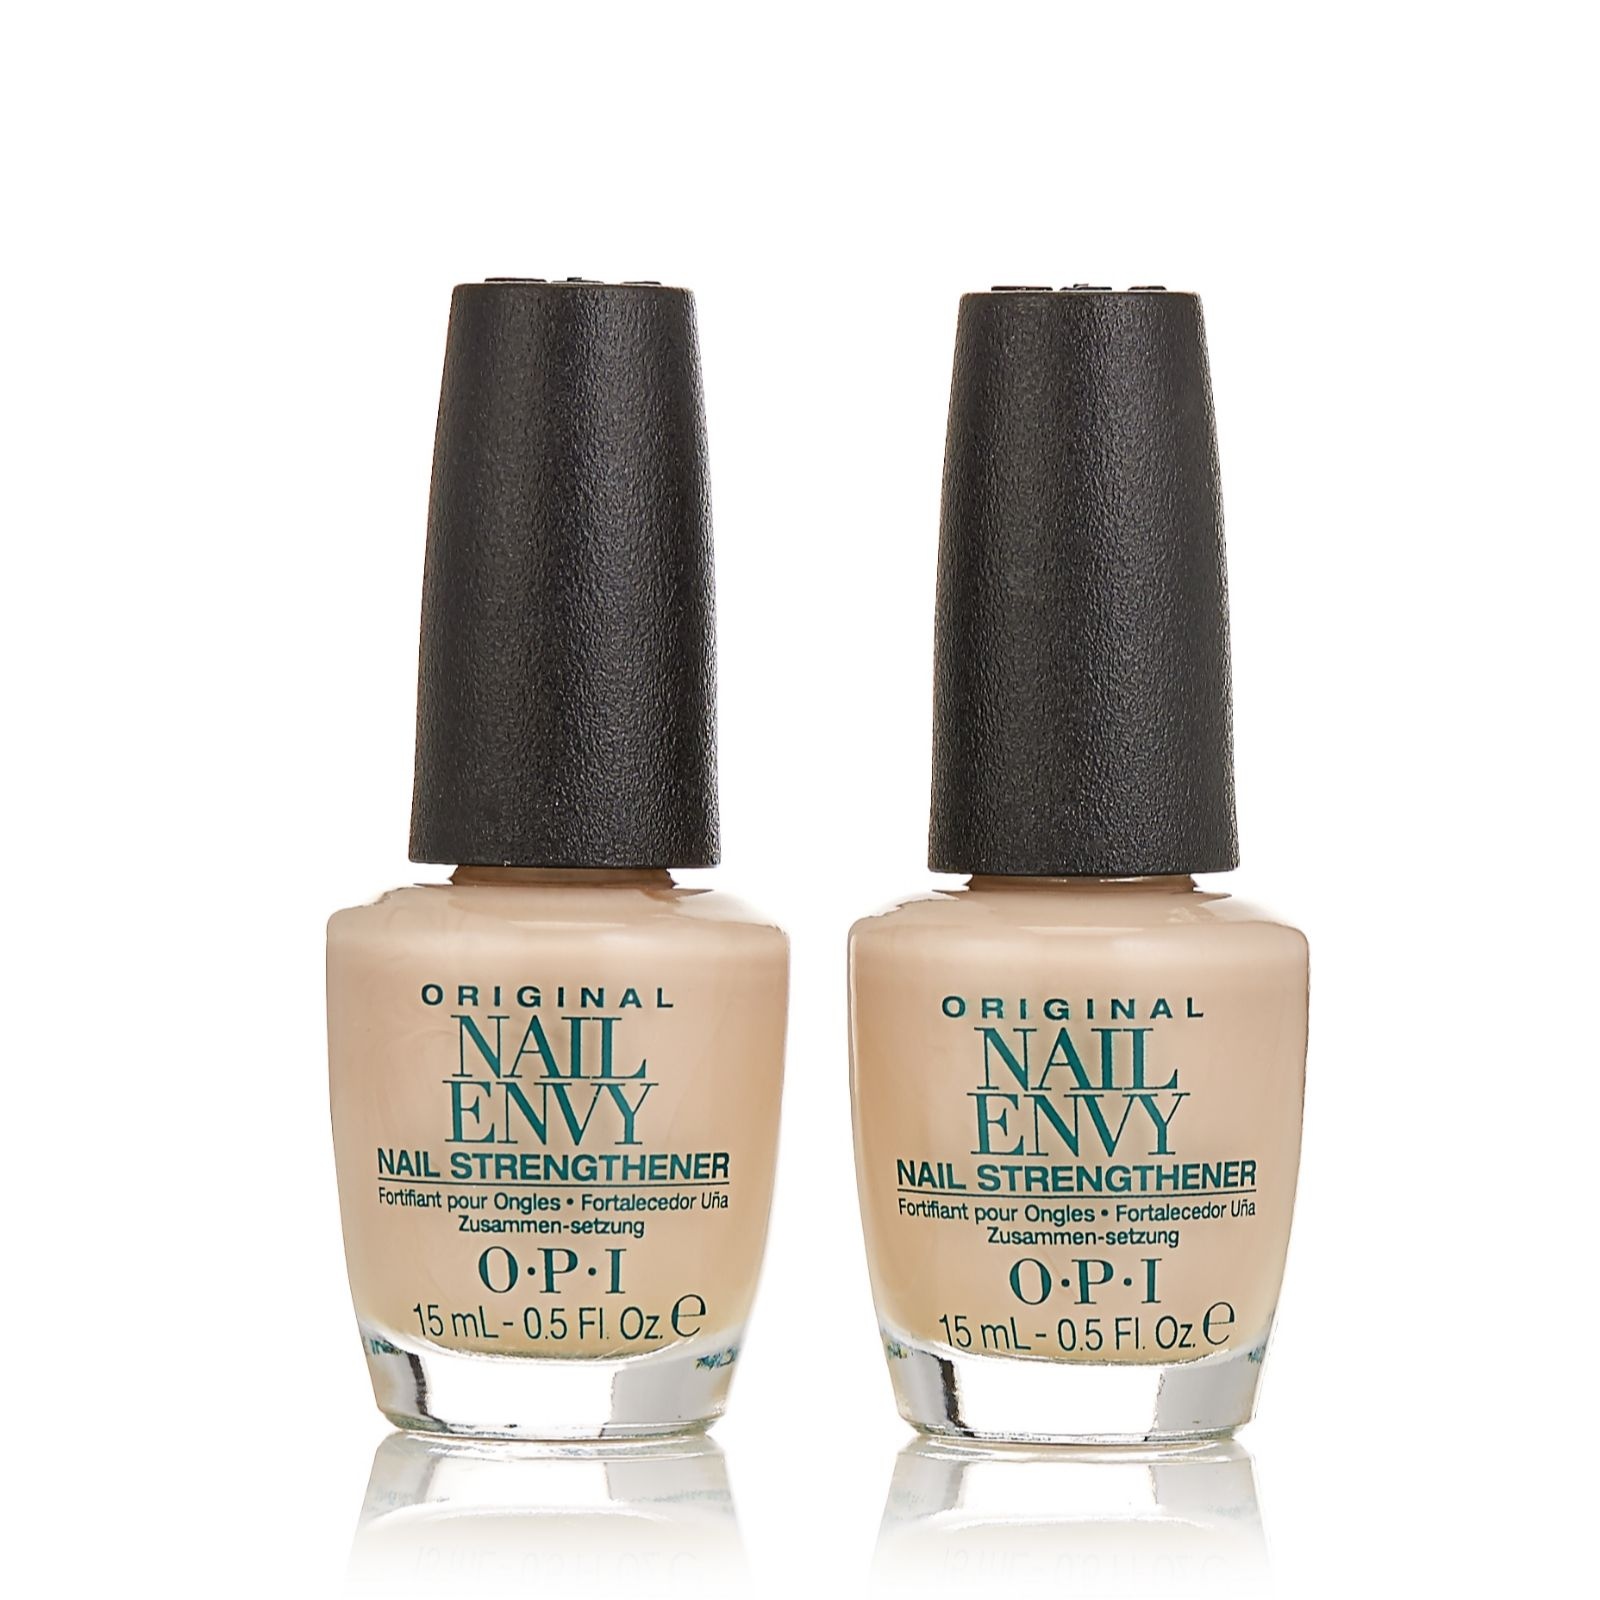 OPI Nude Nail Envy Duo with Gift Box - Page 1 - QVC UK